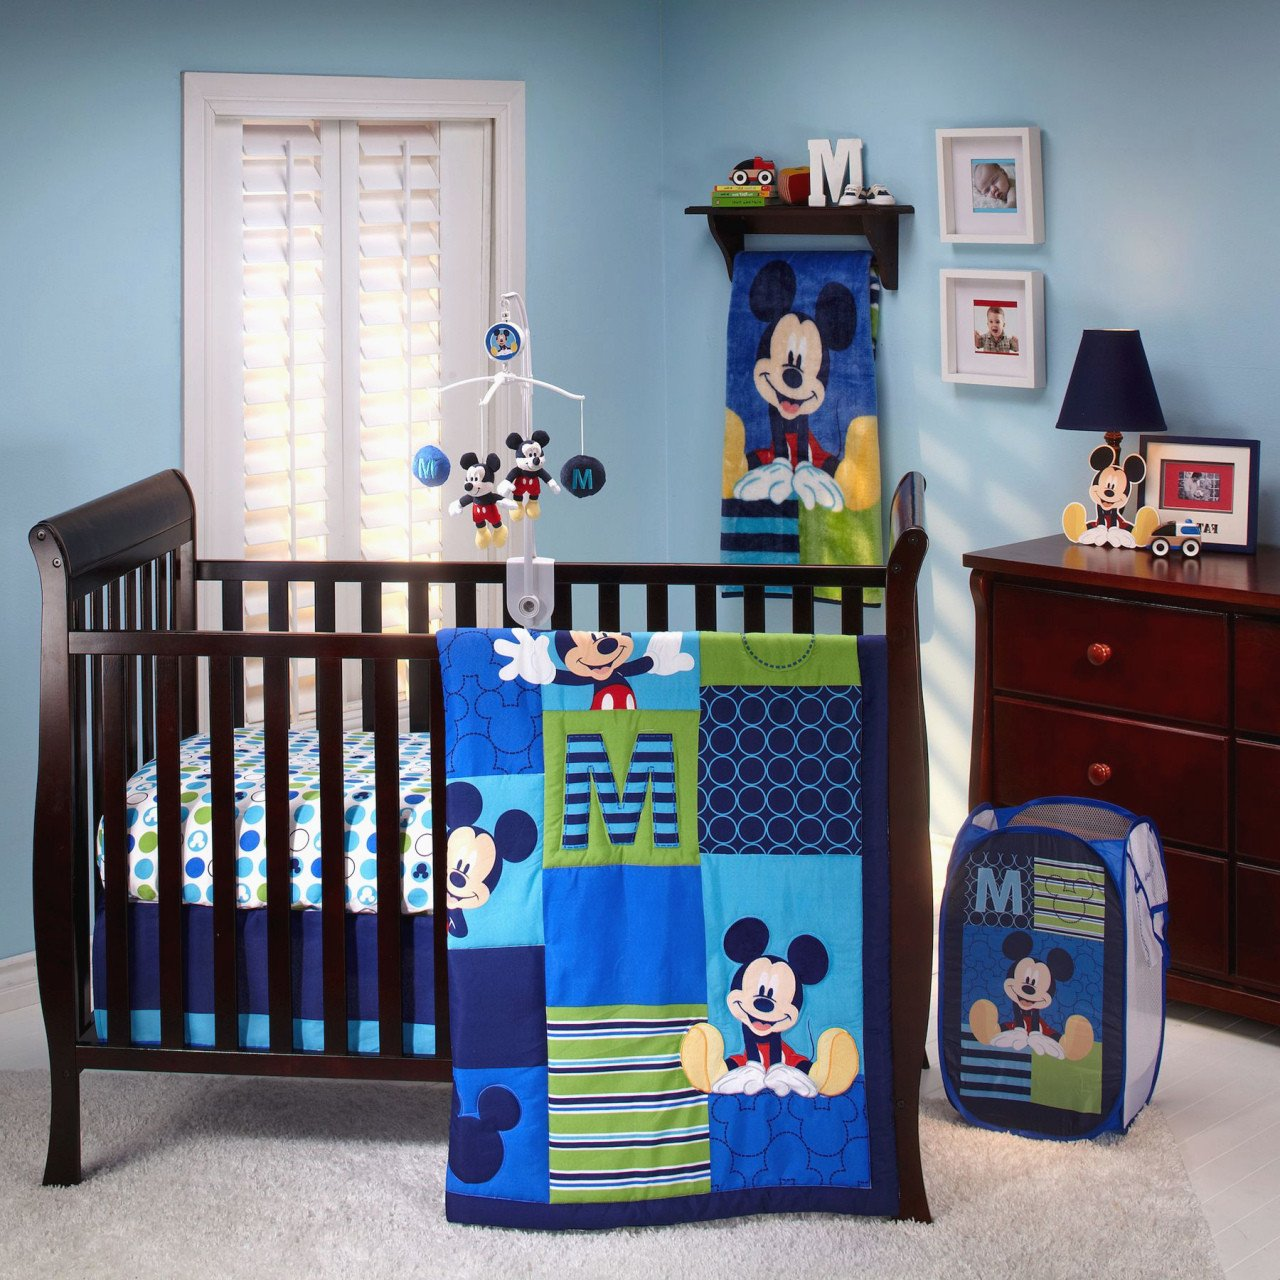 Mickey Mouse Bedroom Decorations Inspirational Mickey Mouse Bedroom Mickey Mouse Bedroom Ideas